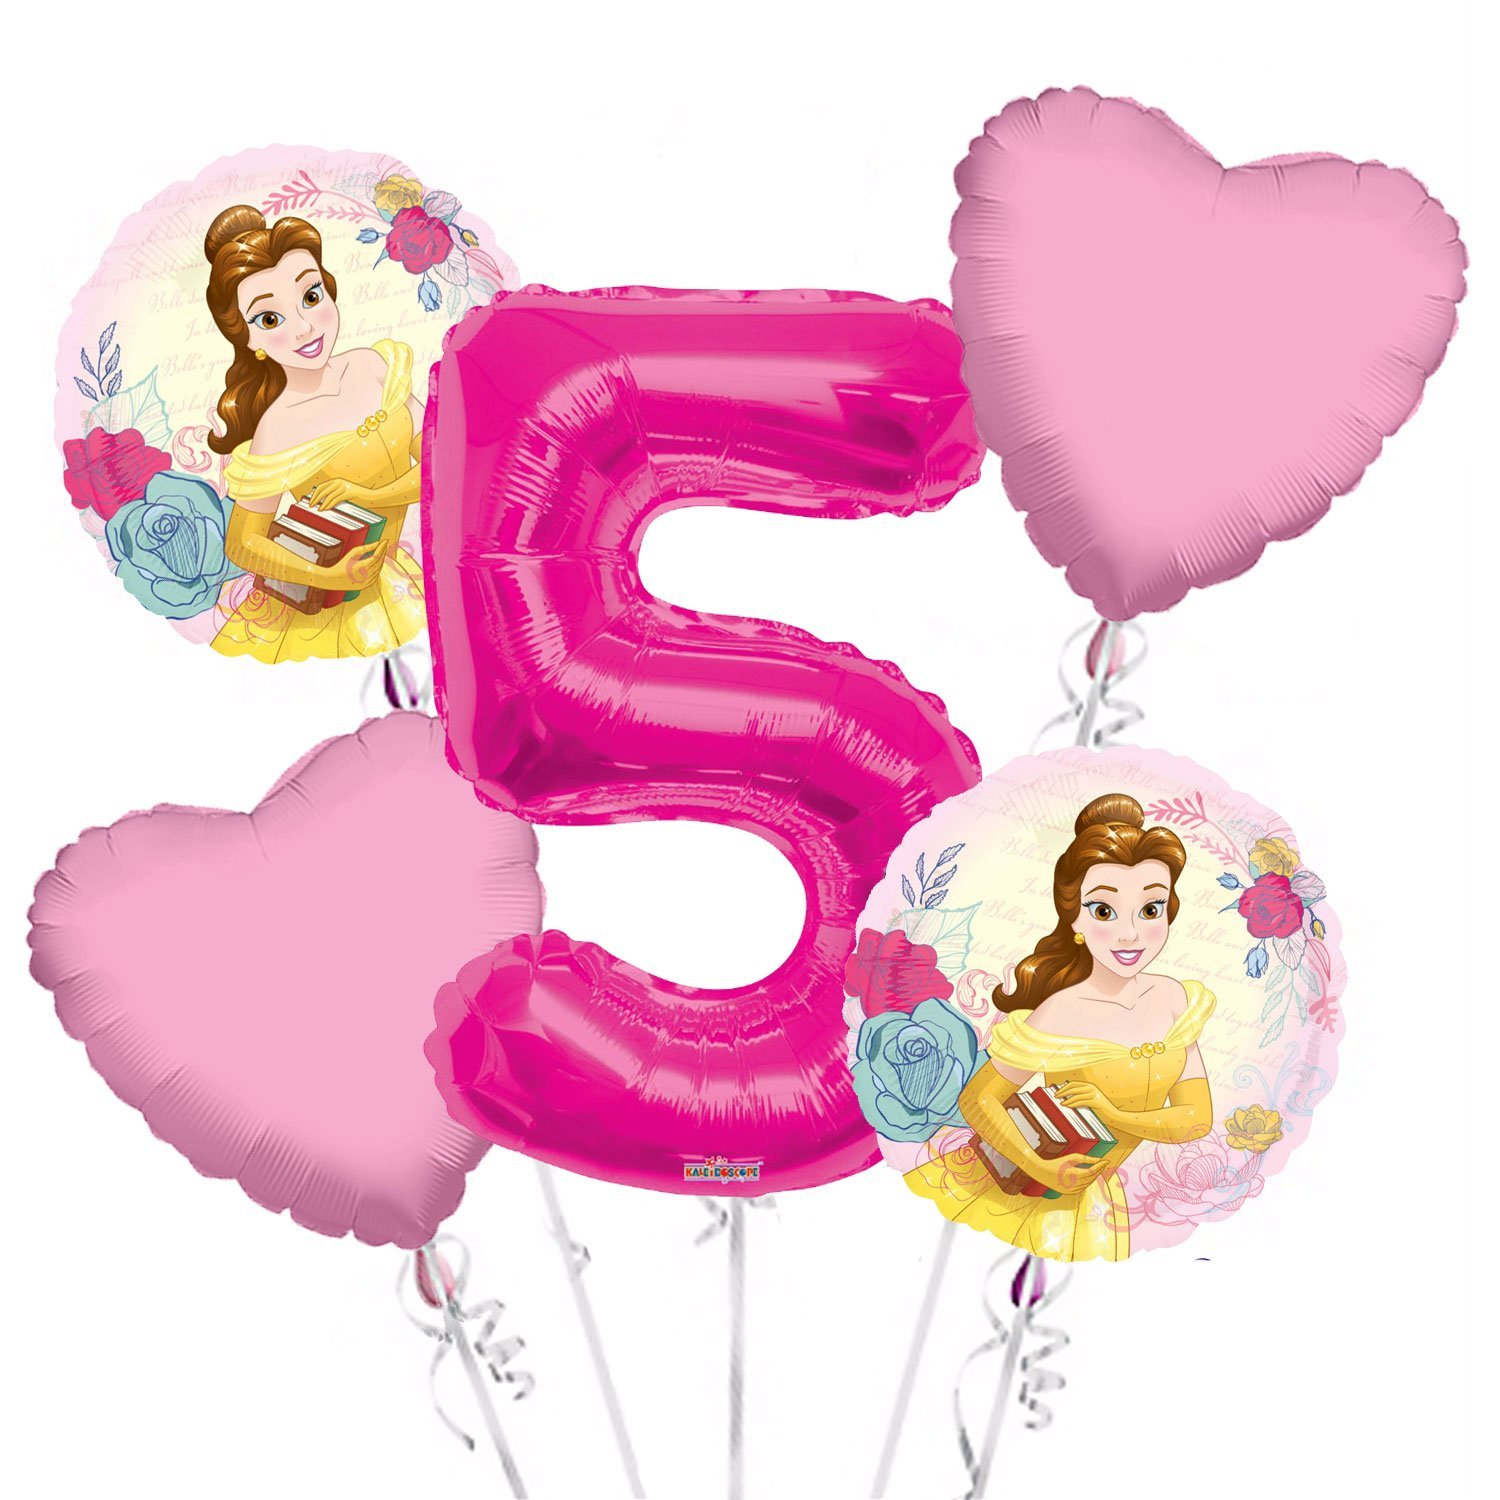 Beauty and the Beast Balloon Bouquet 5th Birthday 5 pcs - Party Supplies Pink, 1 Giant Number 5 Balloon, 34in By Viva Party